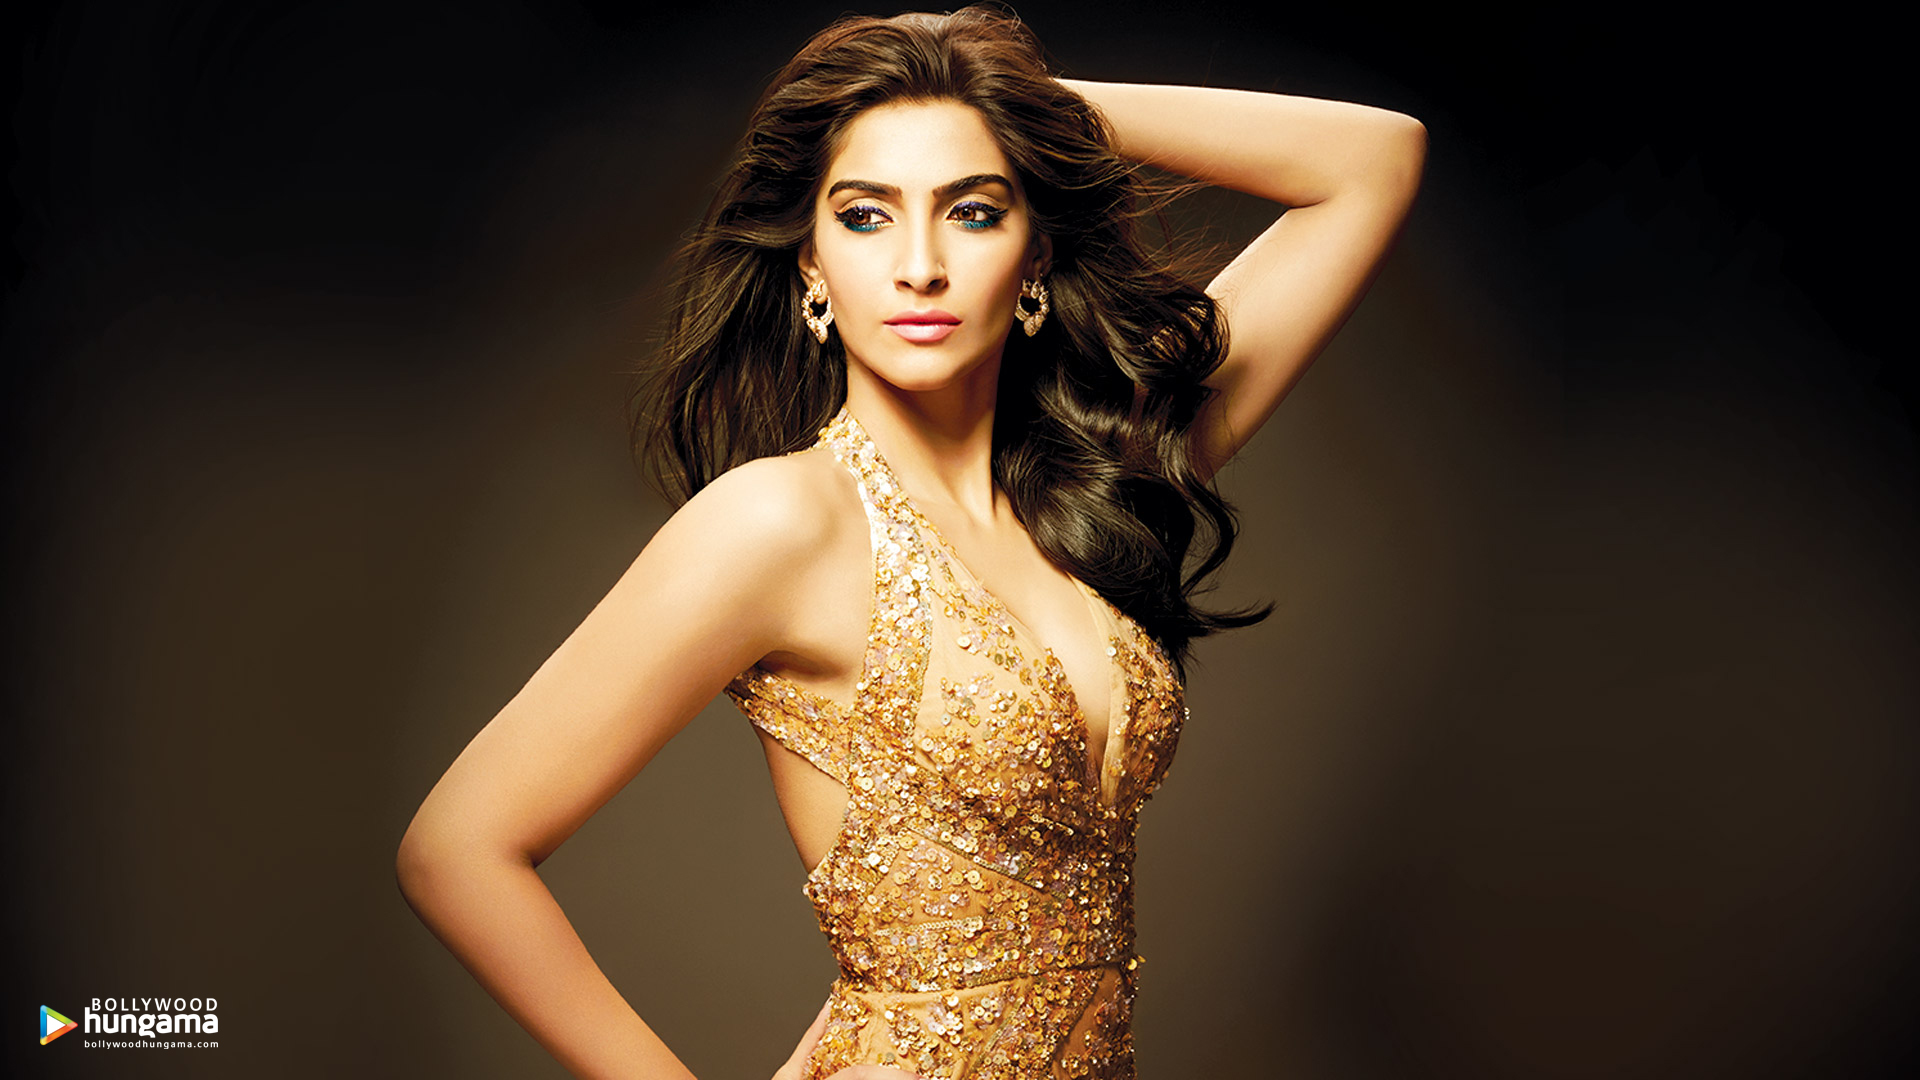 sonam kapoor wallpapers | sonam-kapoor-20 - bollywood hungama